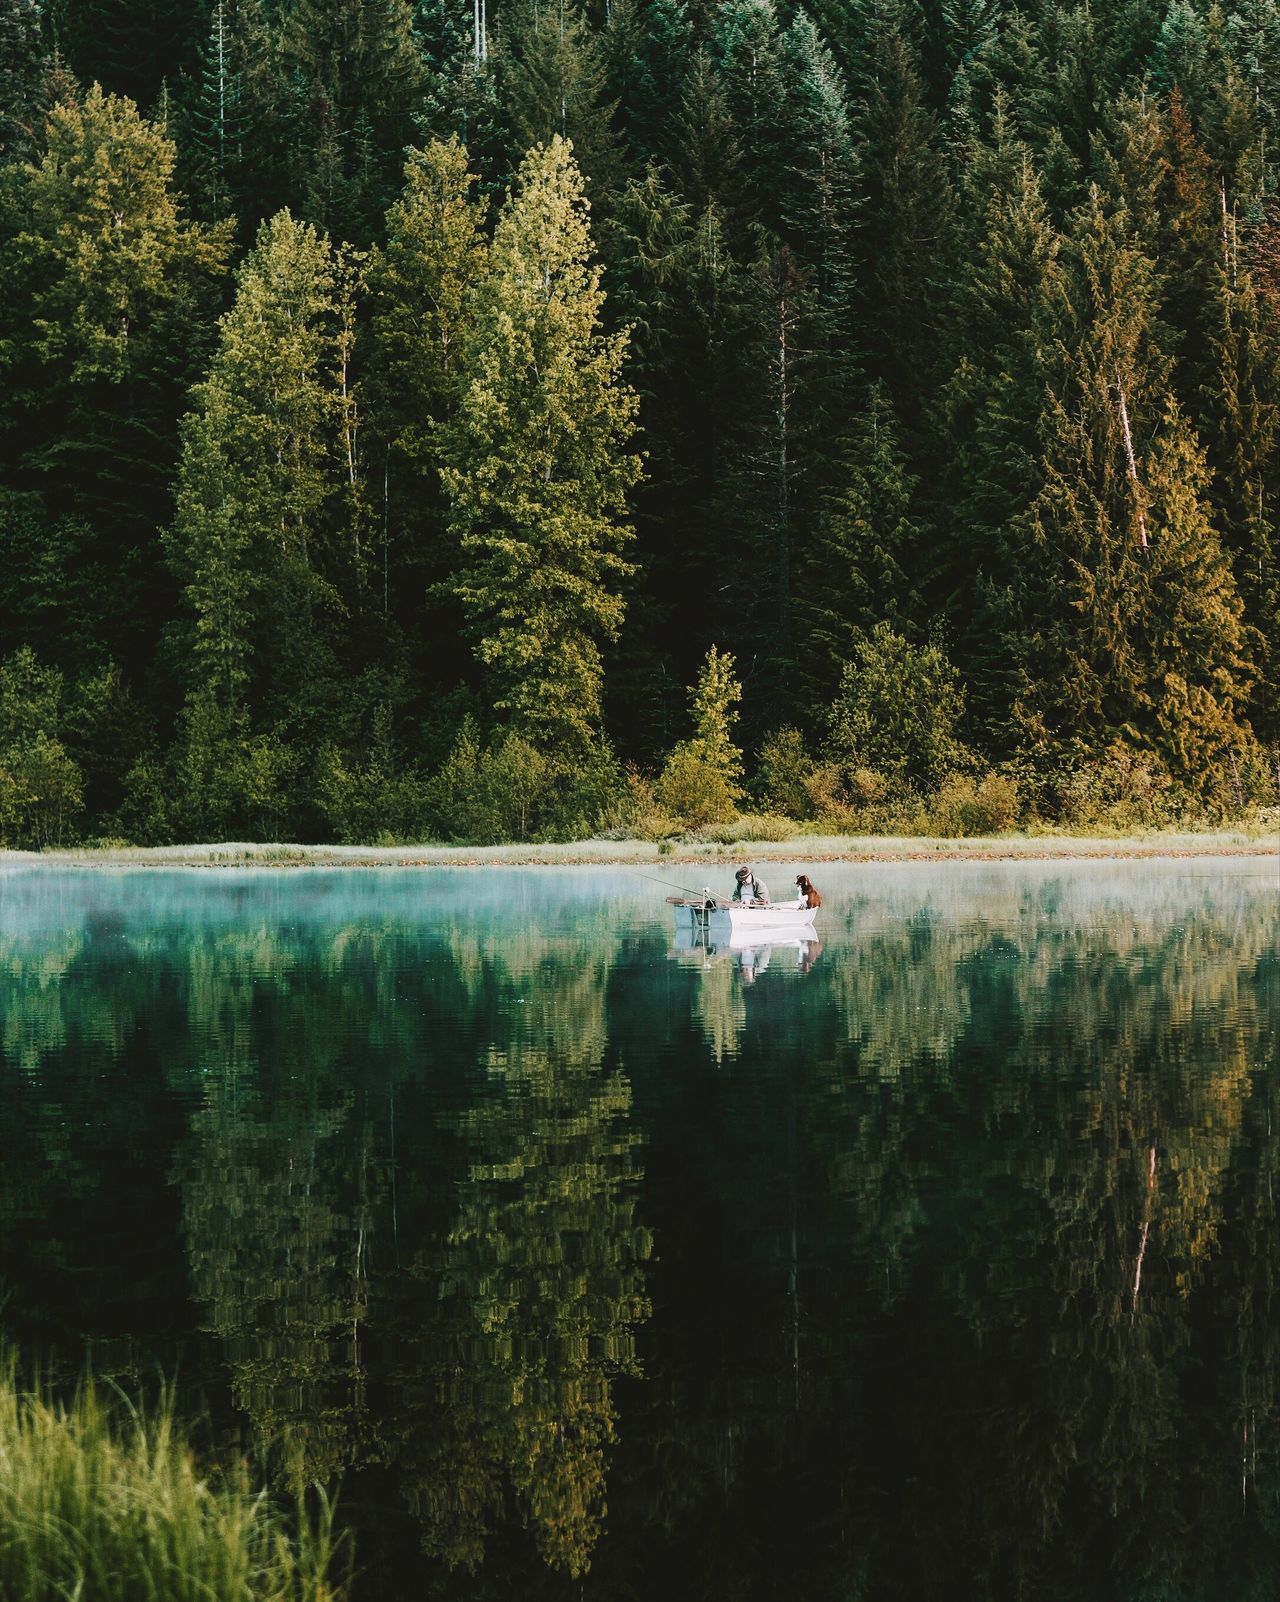 Best friend. Long Goodbye Tree Nature Forest Water Lake Beauty In Nature Nautical Vessel Tranquility Scenics Tranquil Scene Reflection Lush Foliage Day Transportation Mode Of Transport Growth Outdoors Plant No People Leaf TCPM